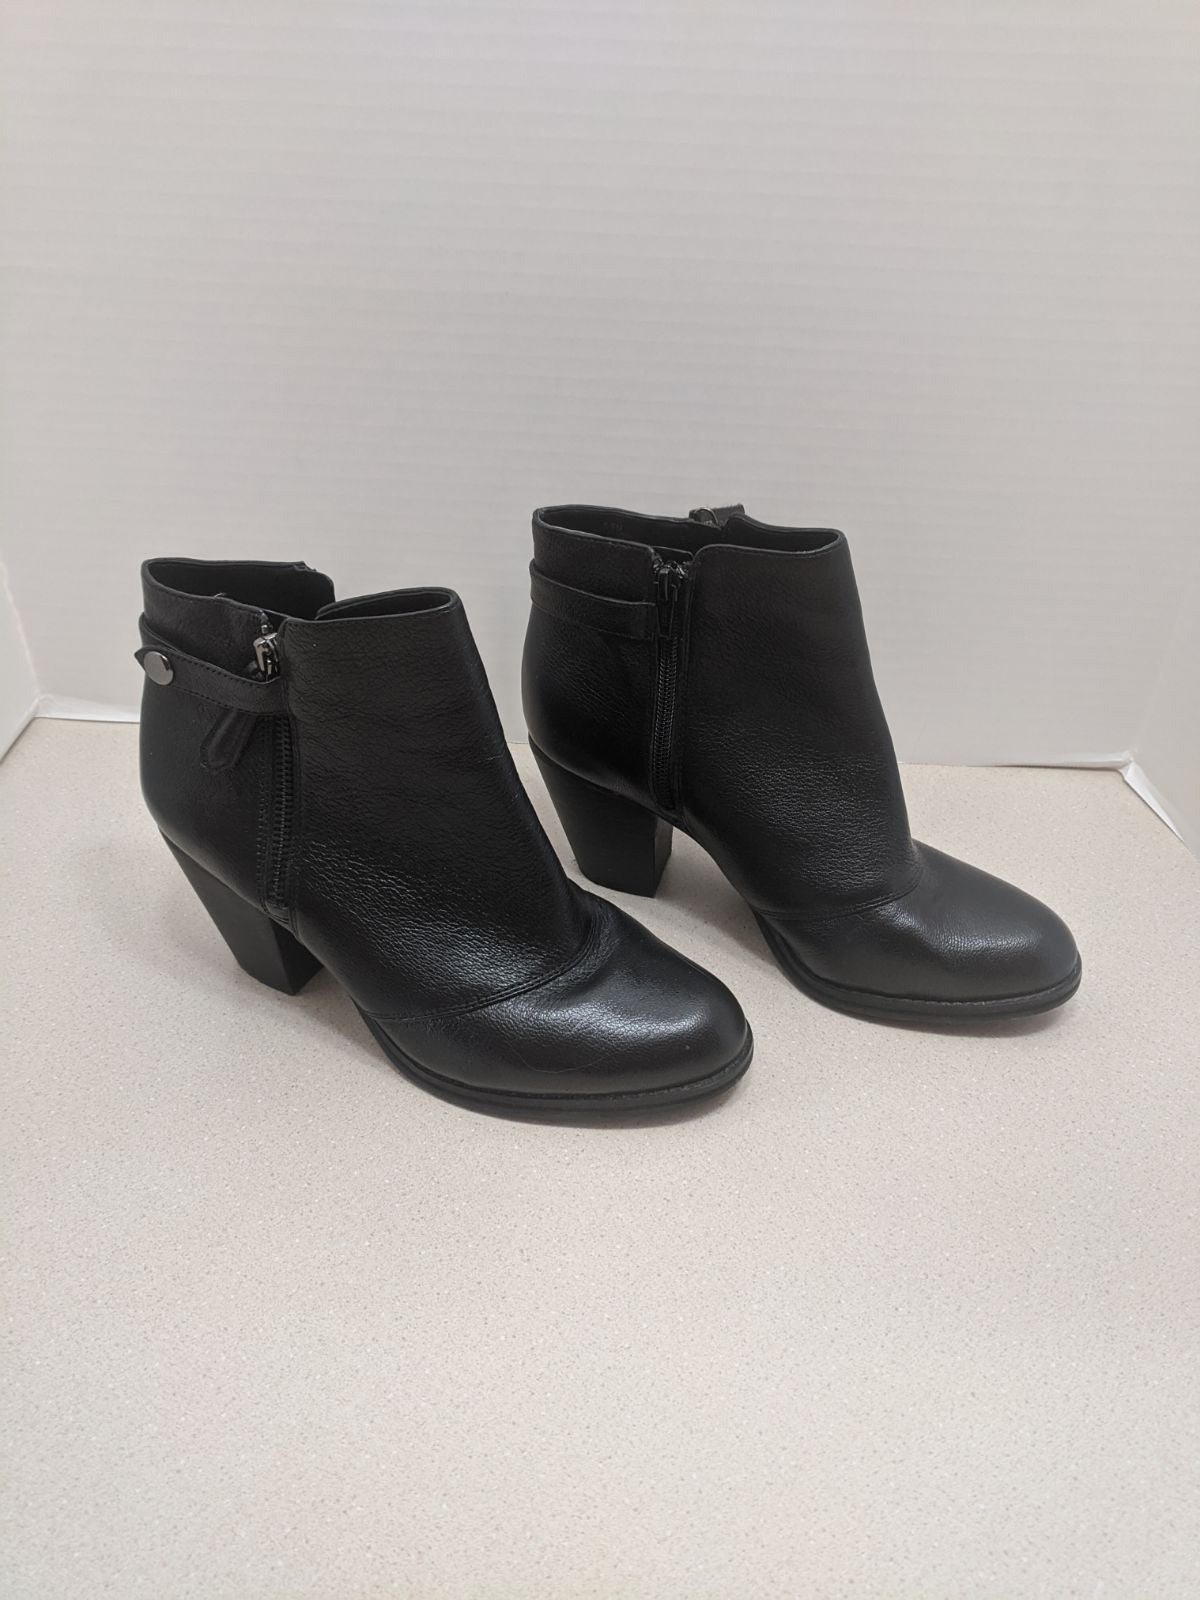 GB Gianni Bini black leather Booties